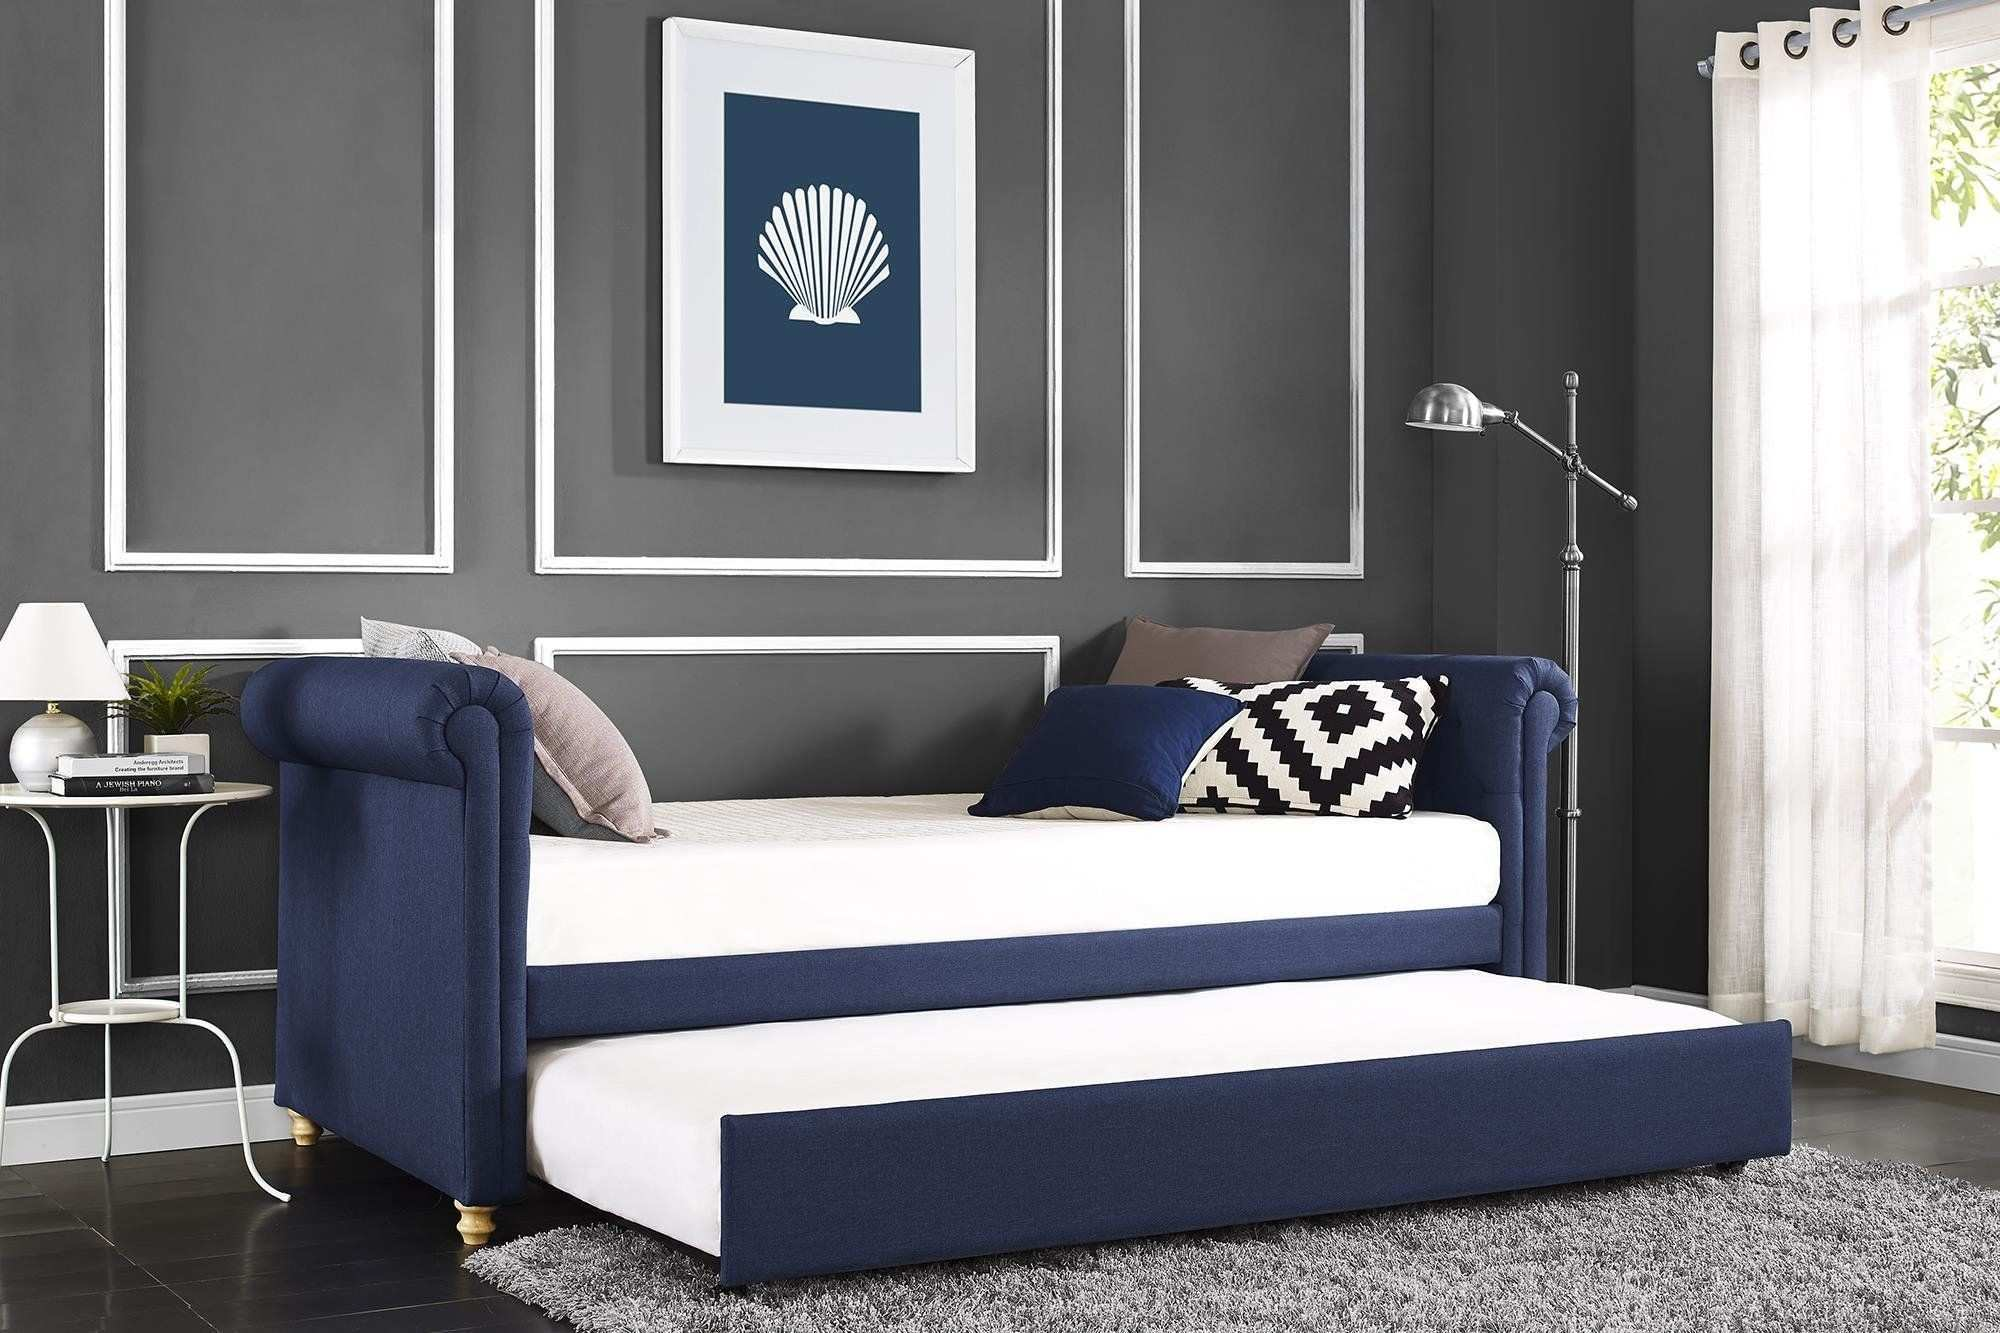 Diy Playroom Elegant Amazon Dhp sophia Upholstered Daybed and